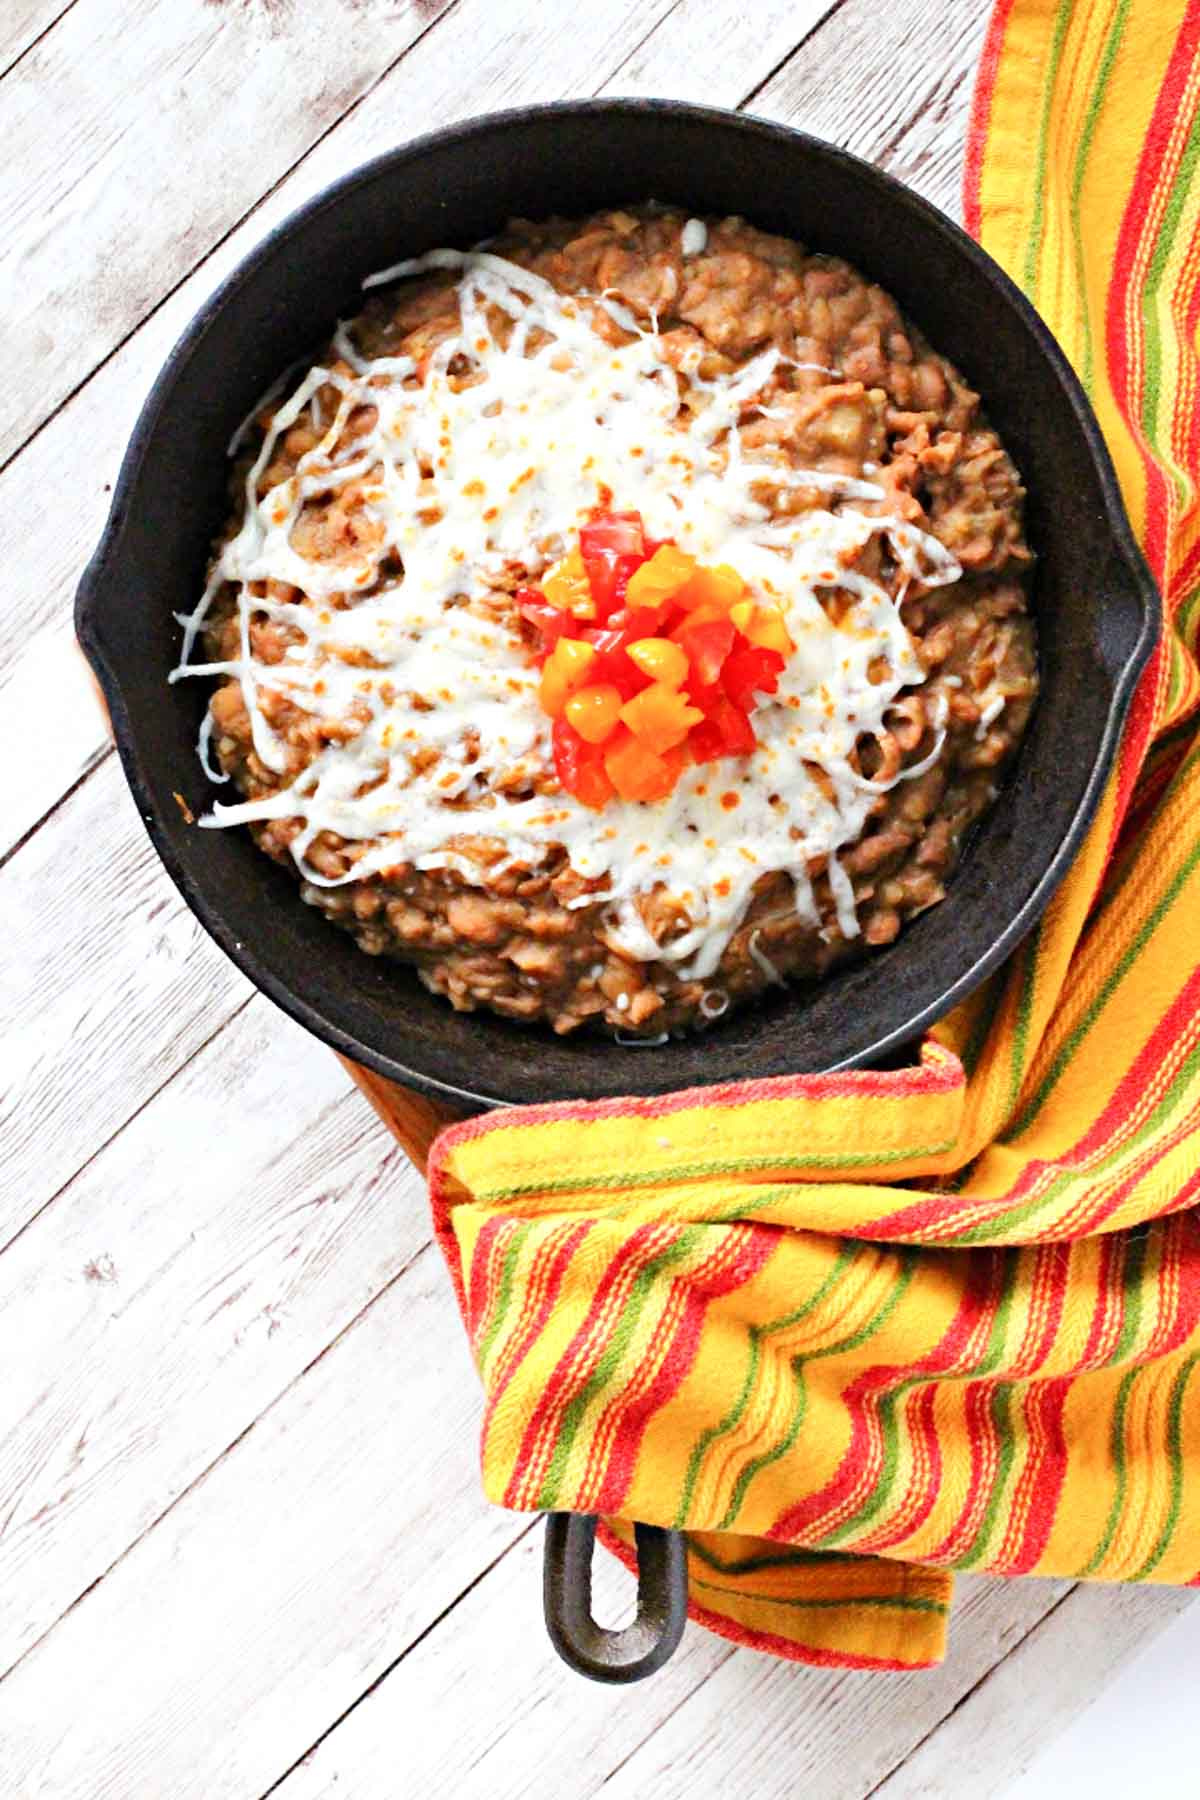 Instant pot refried beans served in a cast iron skillet topped with cheese and chopped tomatoes